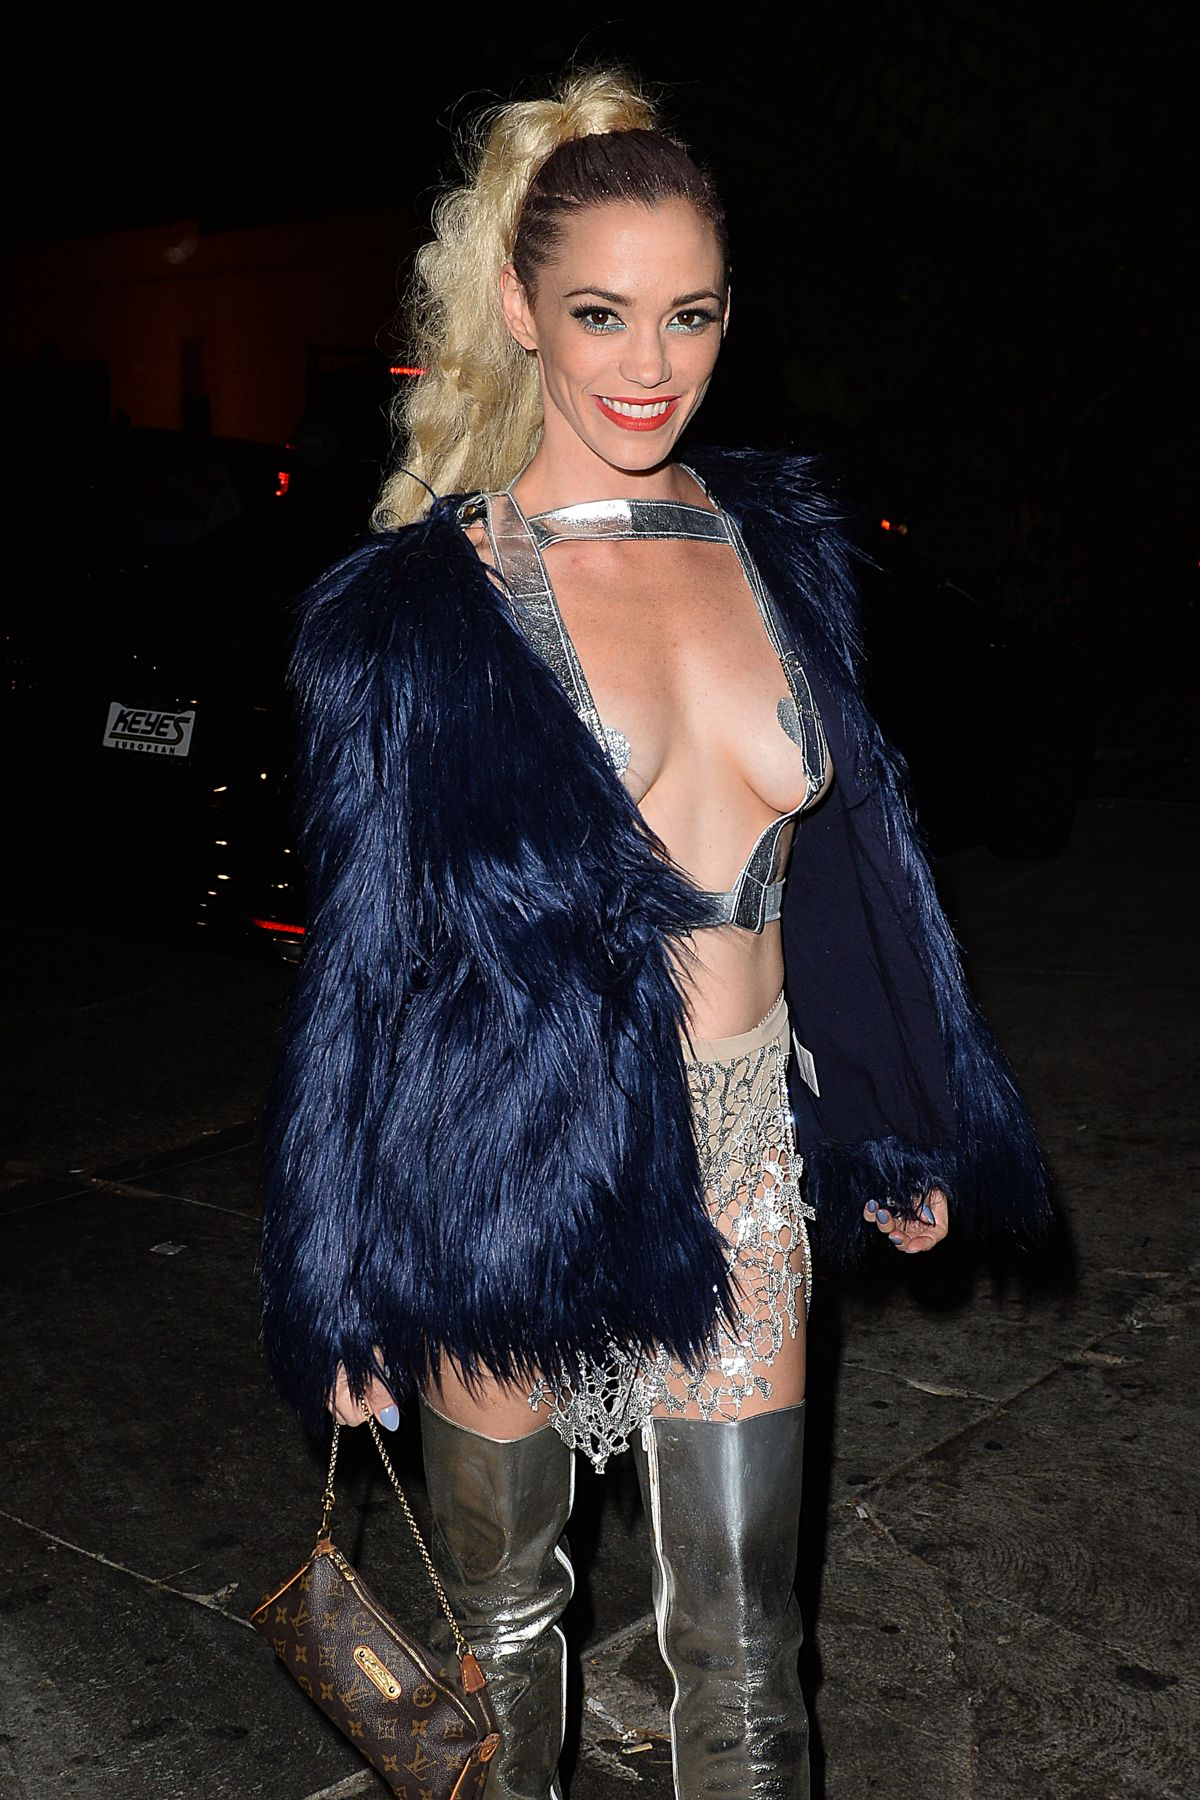 JESSICA SUTTA at Just Jared Halloween Party in Hollywood 10/31 ...